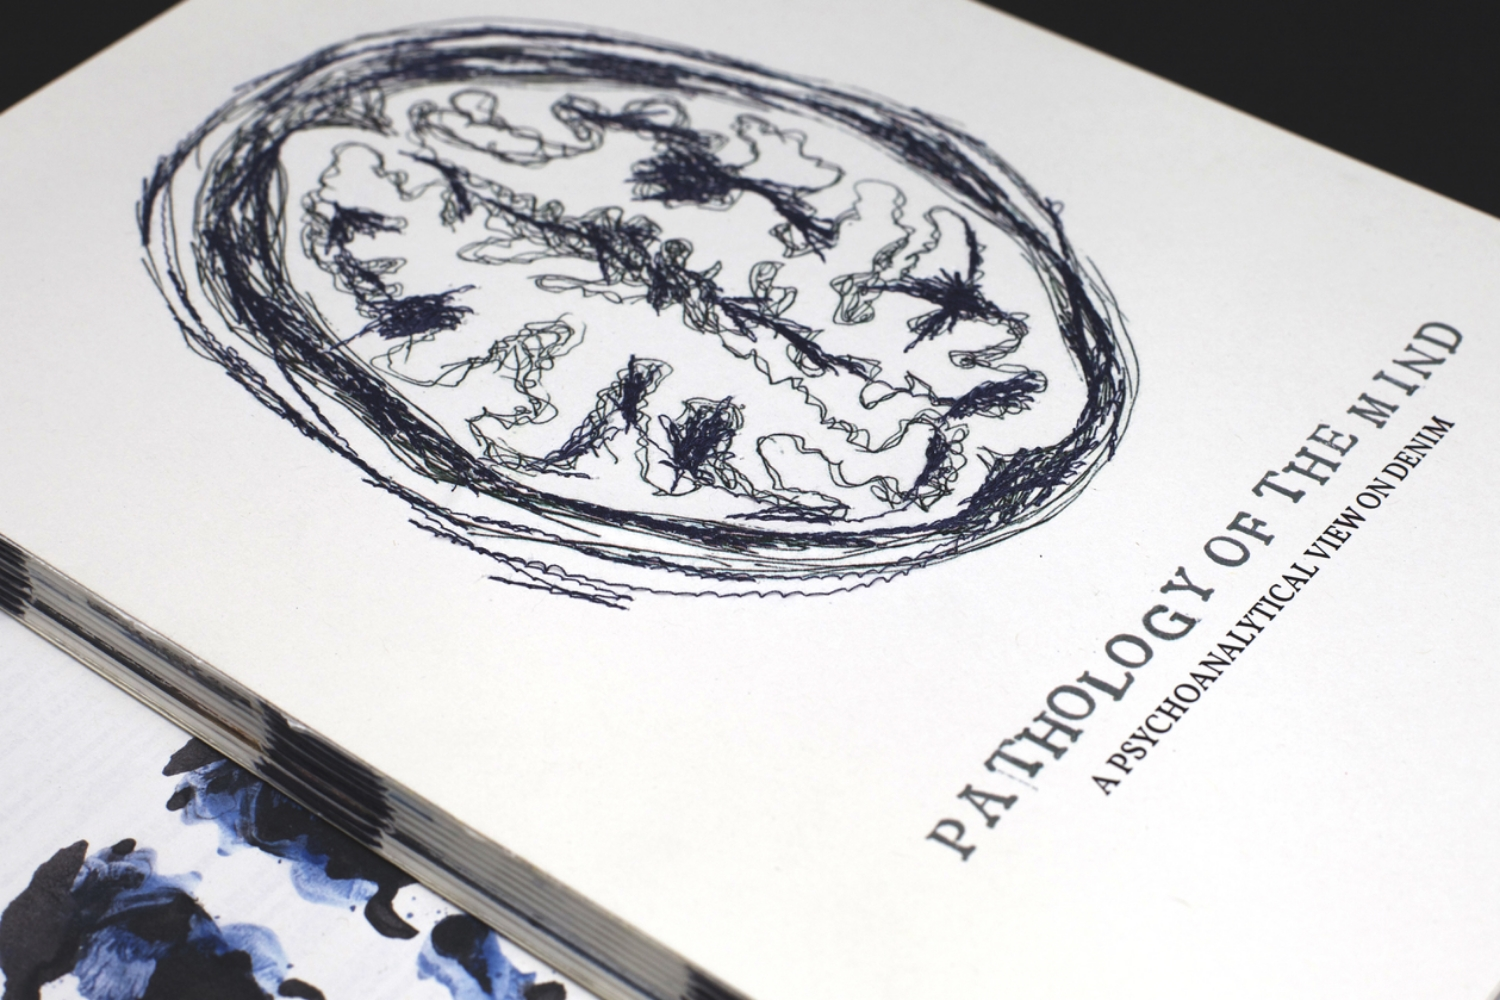 Pathology of the Mind - A psychoanalytical view on denim